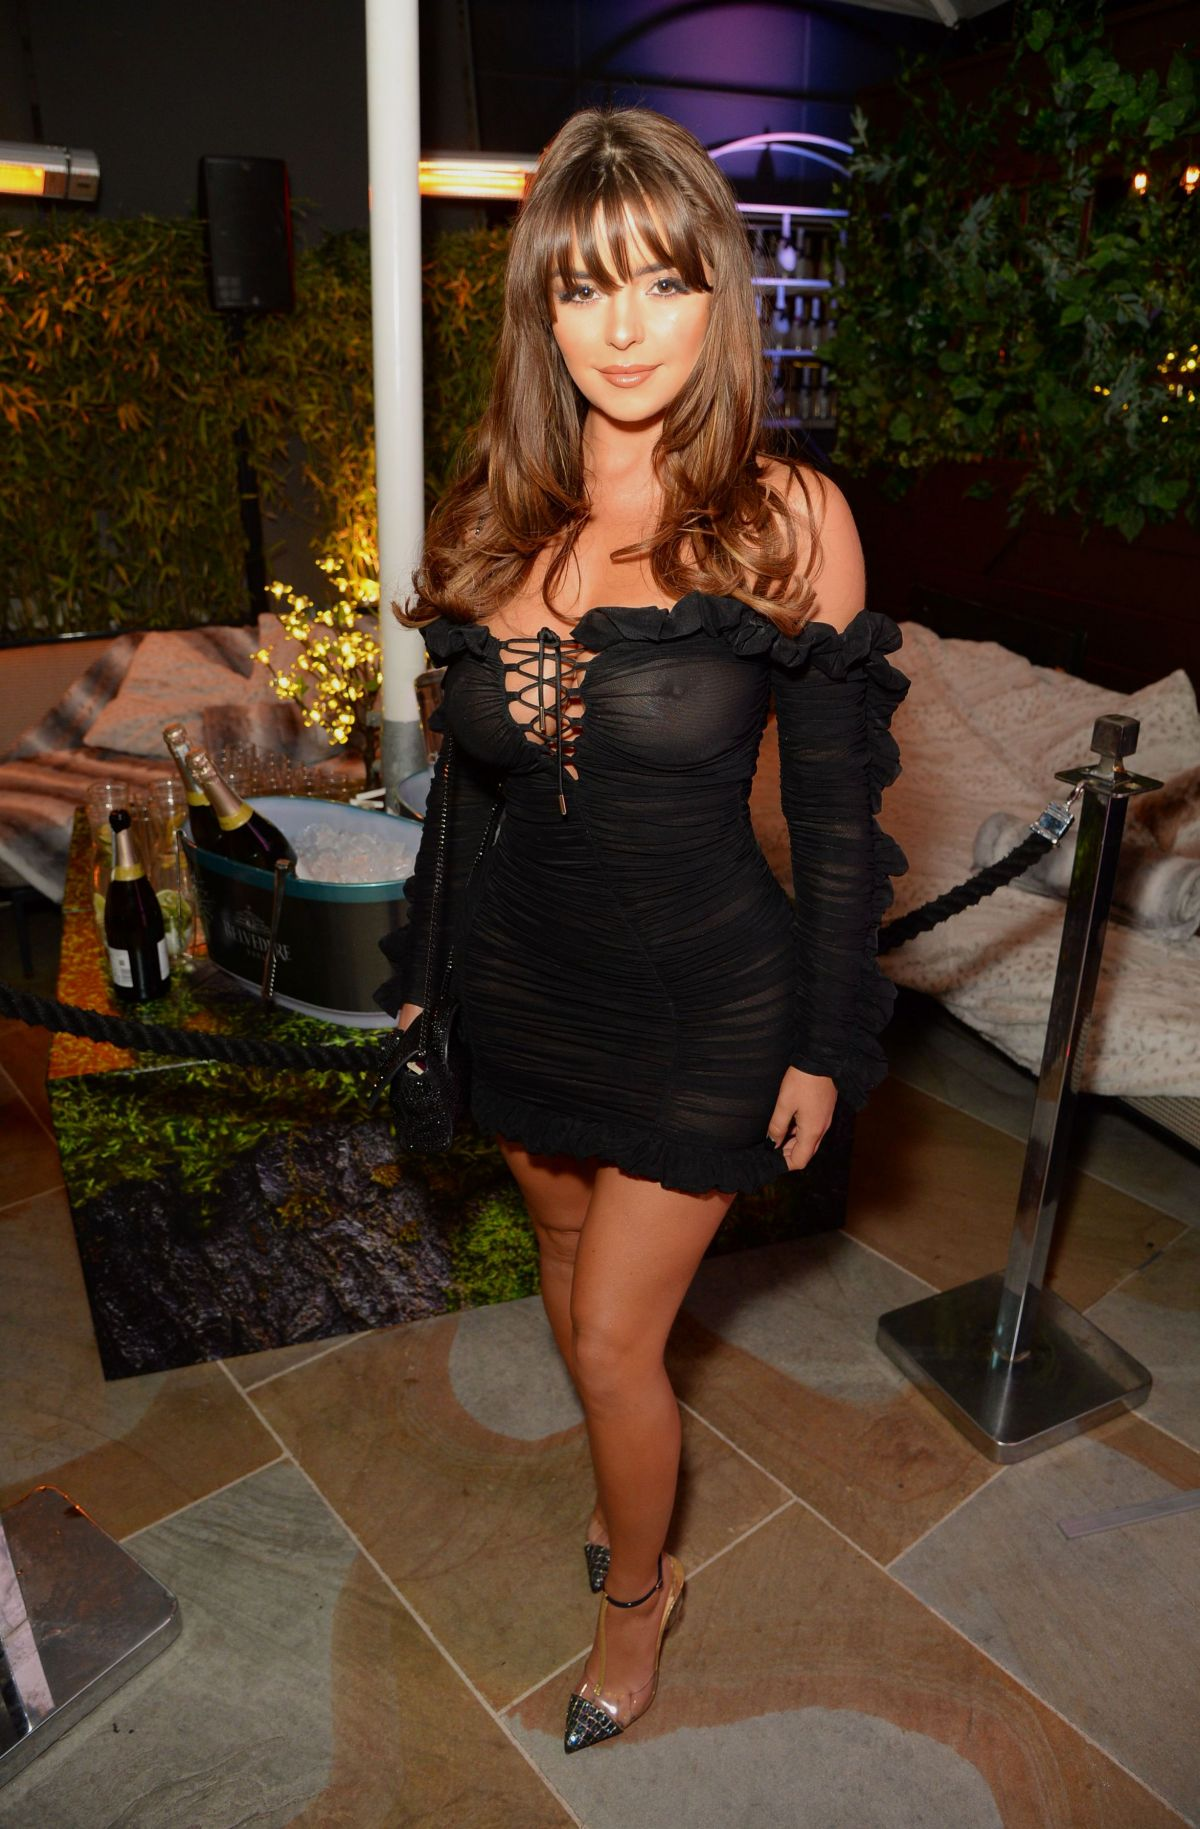 DEMI ROSE MAWBY at The Skinny Tan: Choc Range Launch Party